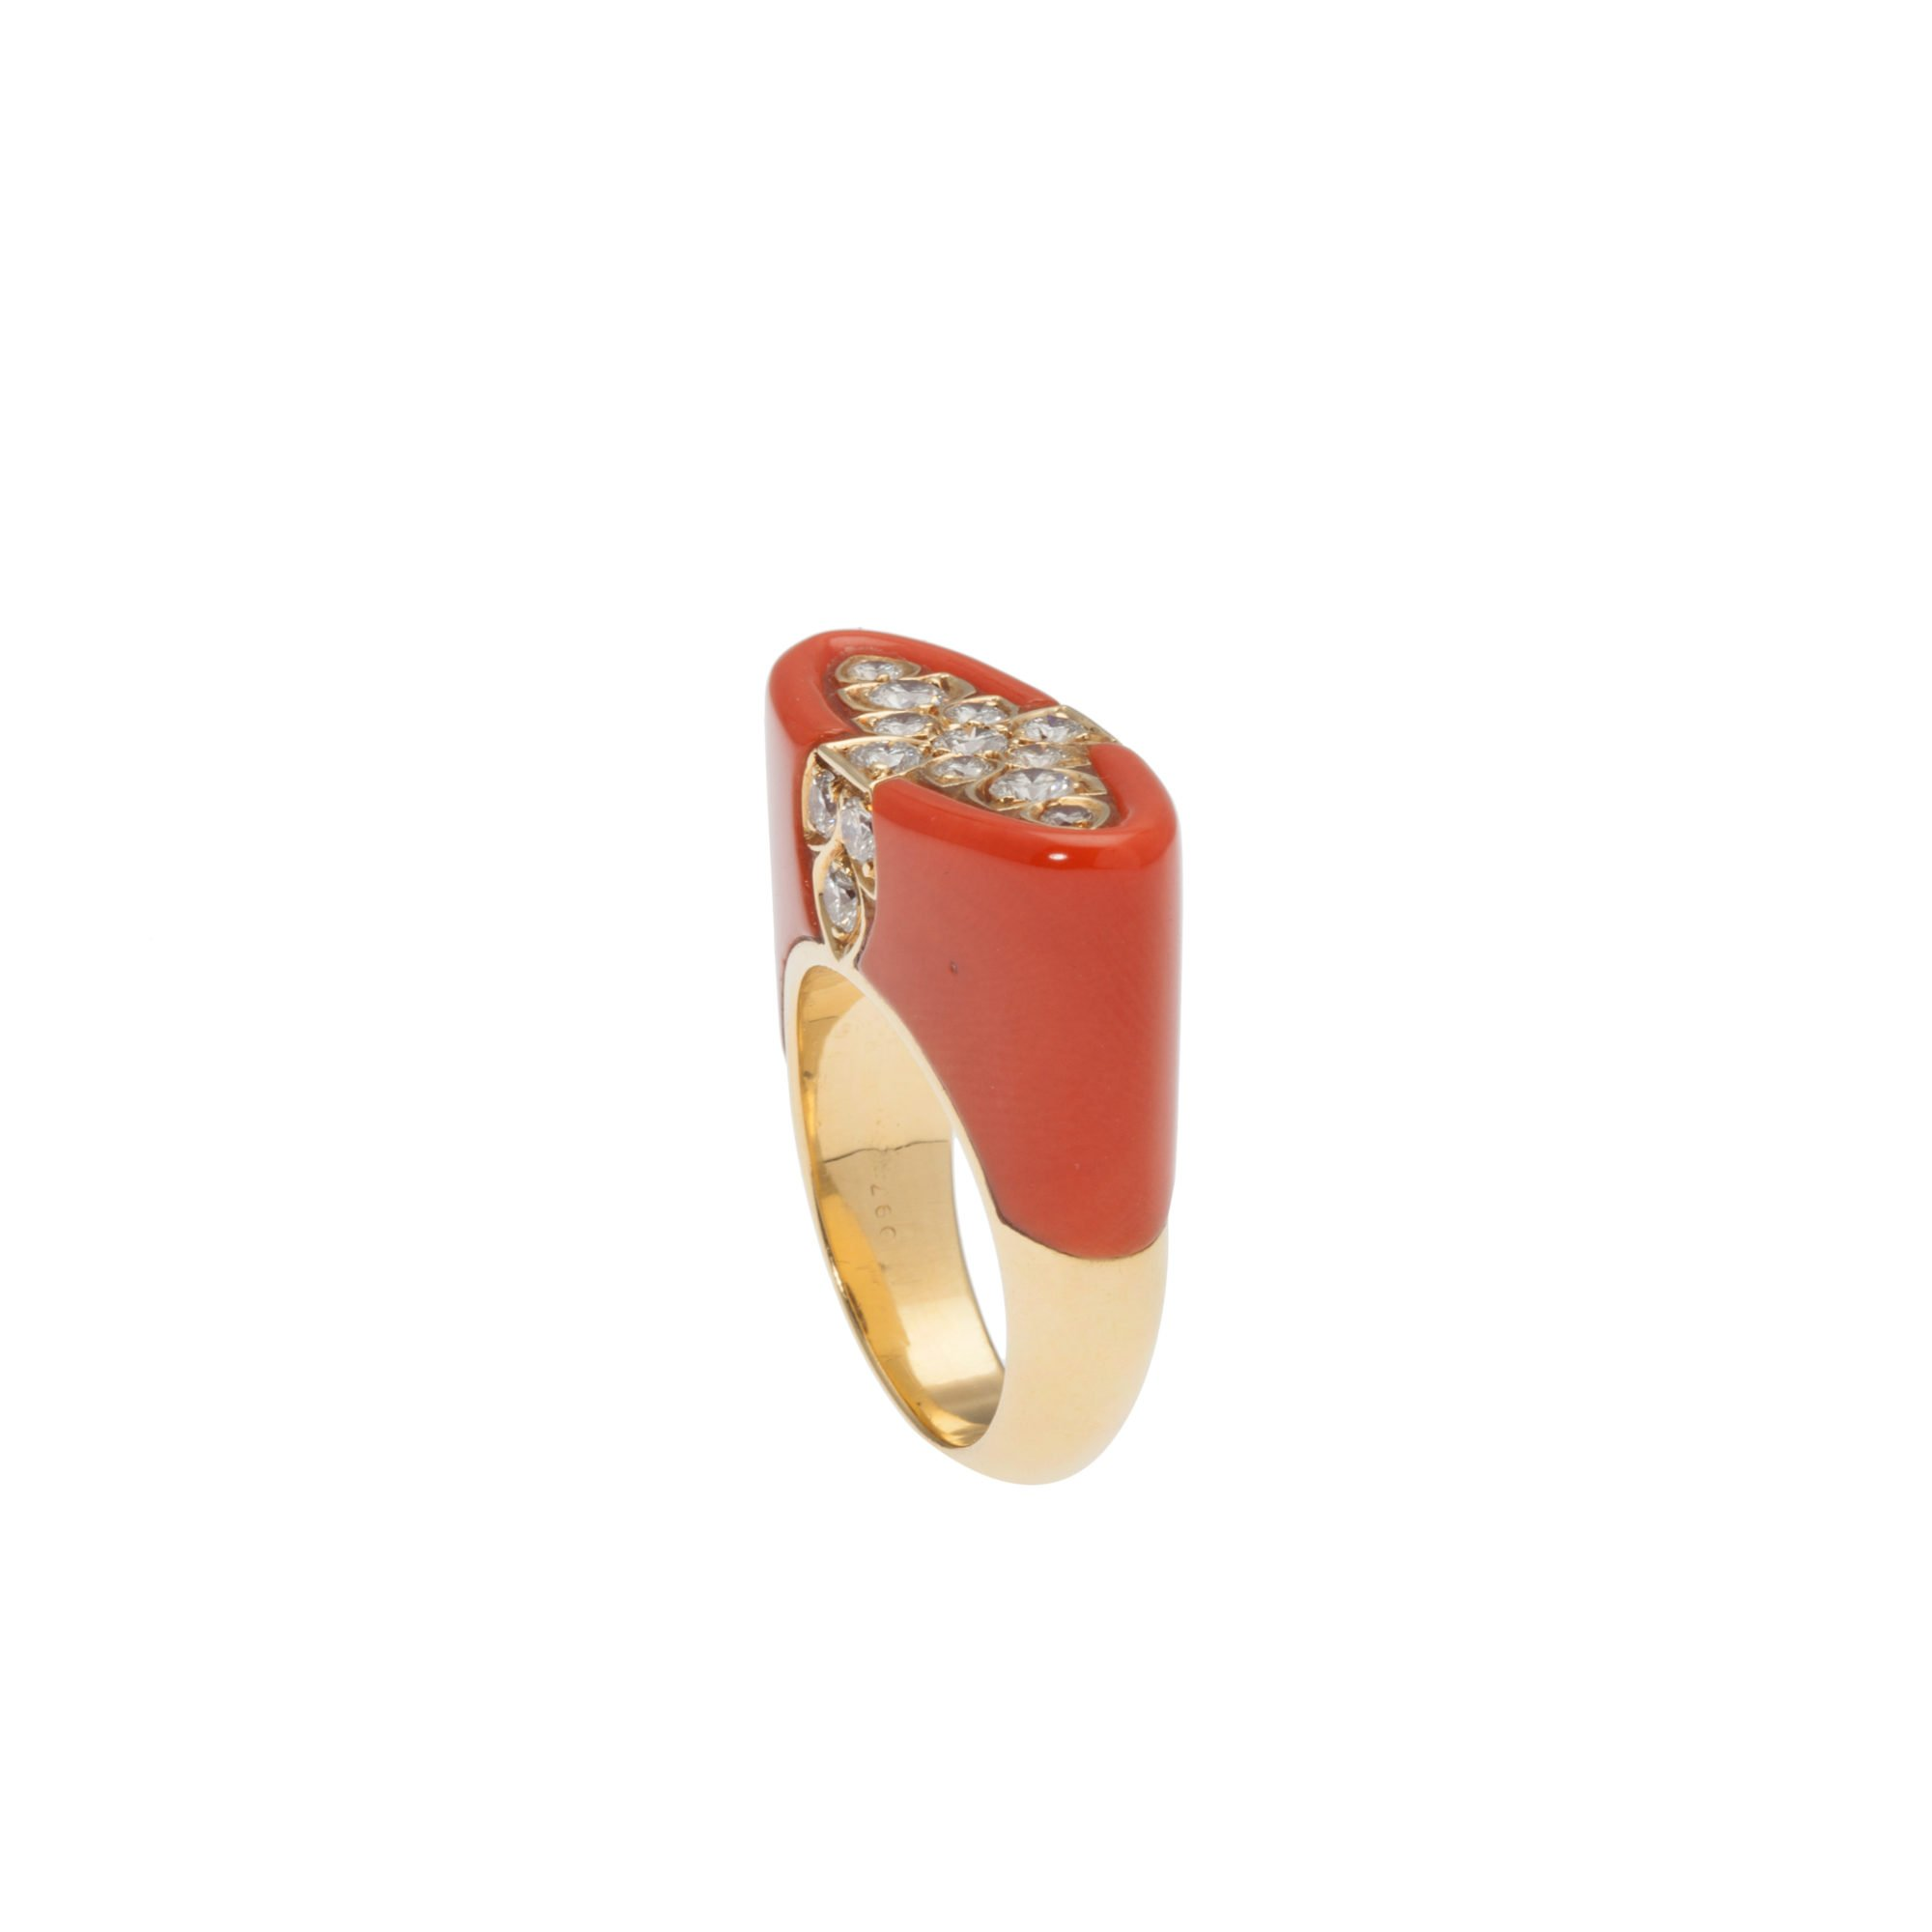 sparkesdesign gemstone products coral design newfoundland sparkes silver tapestry rings canada sterling ring